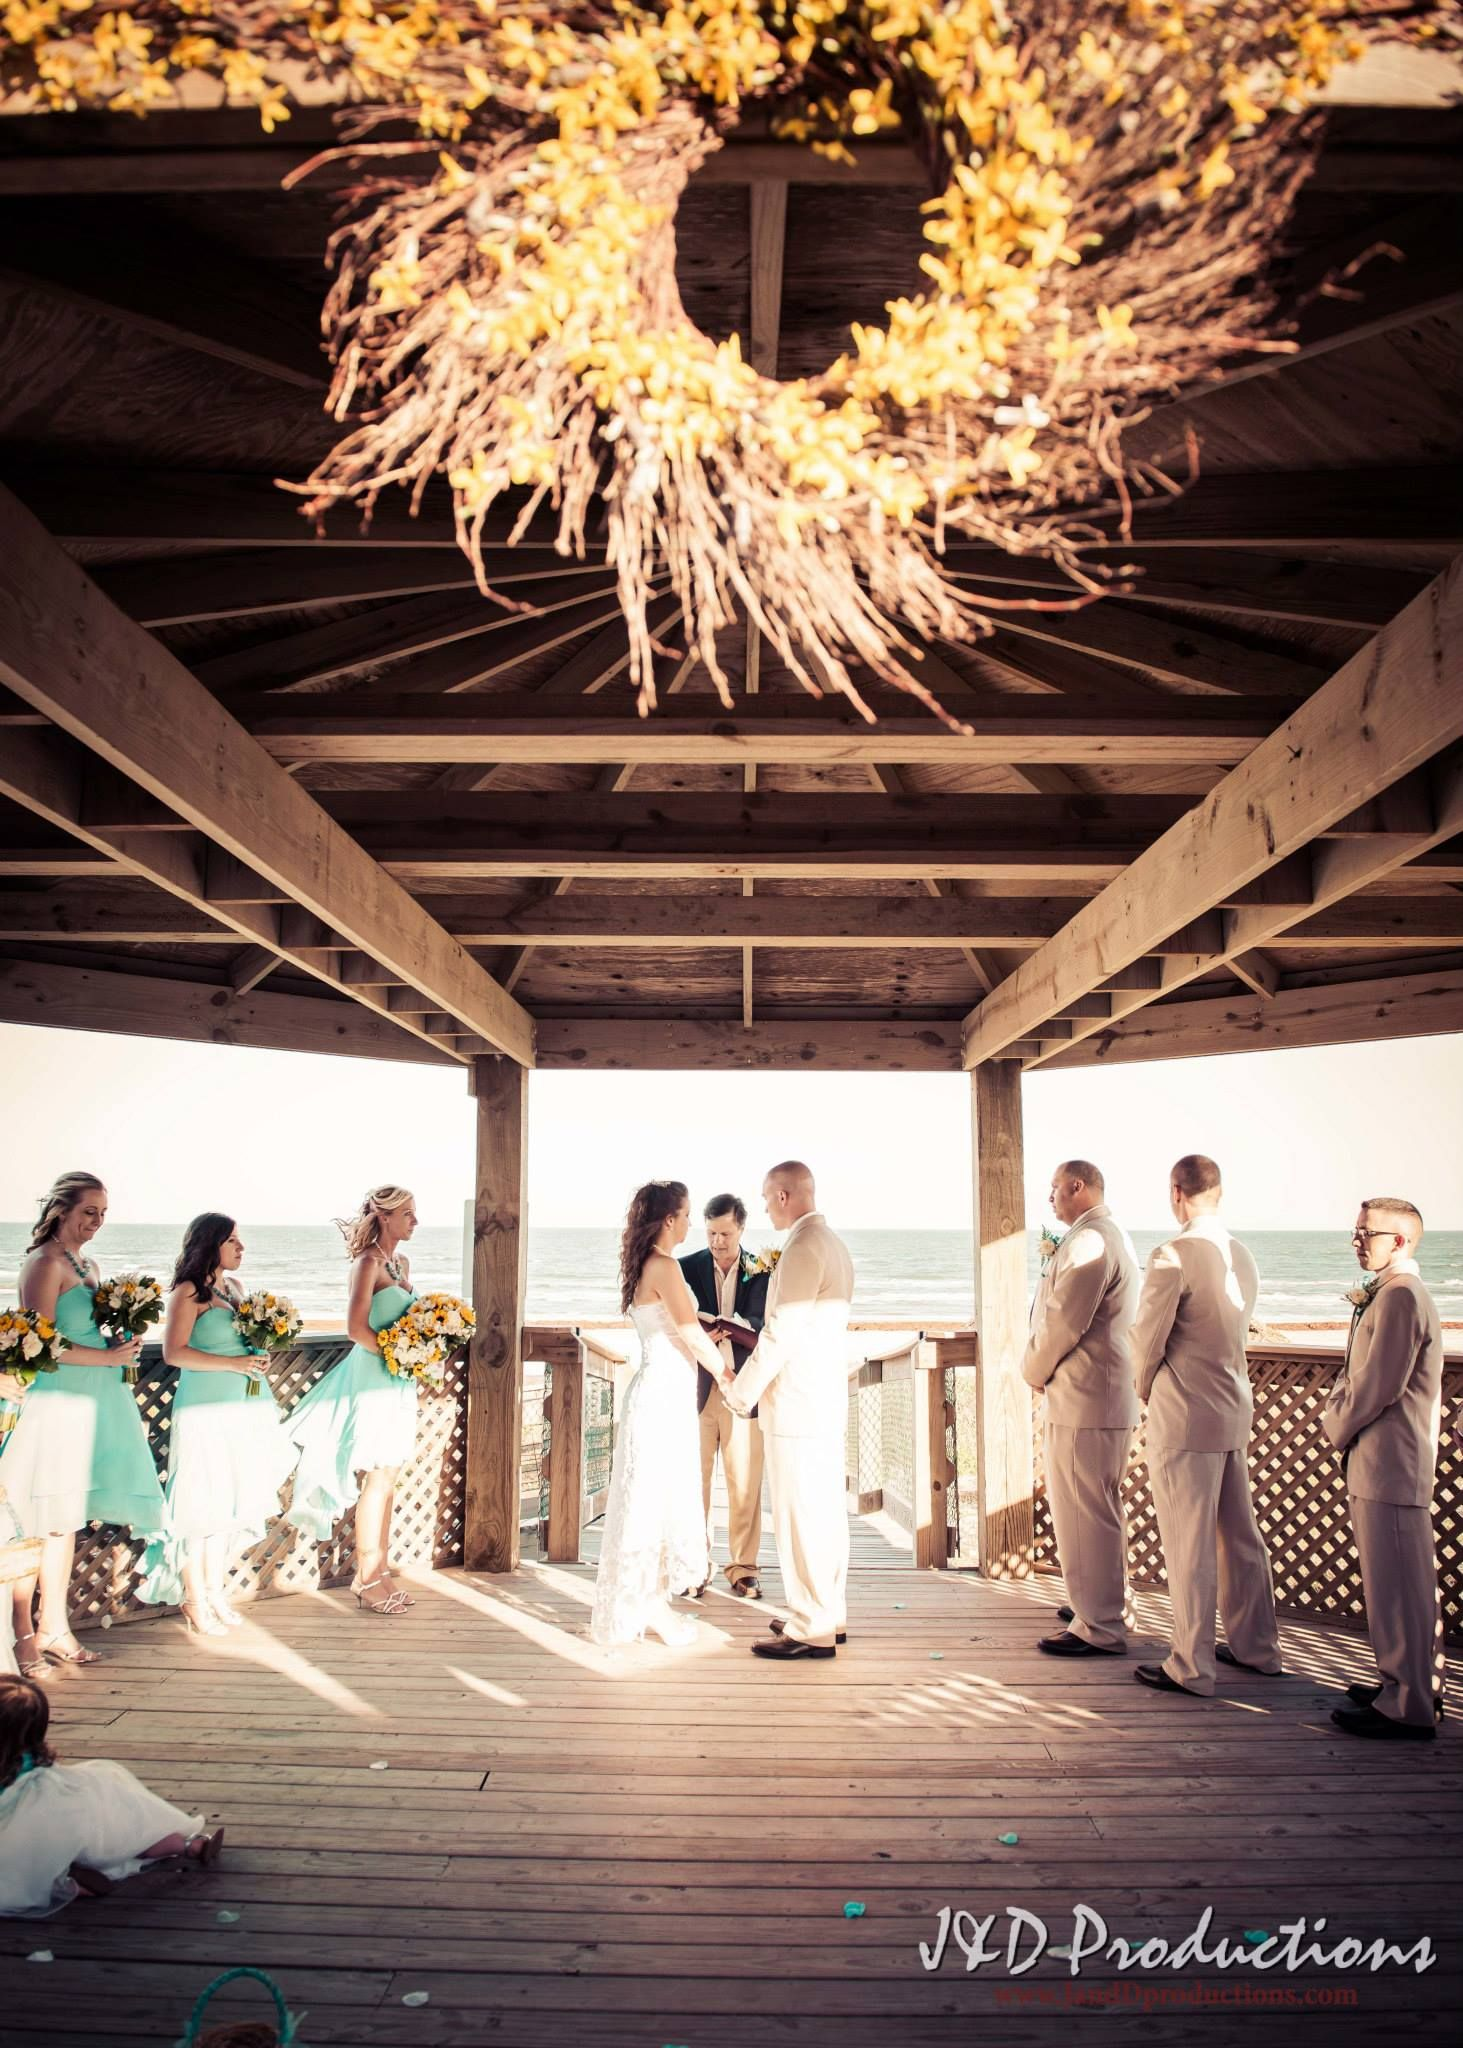 Brittany And Zach S Wedding At Stahlman Park In Surfside Beach Tx Texasweddingvenues